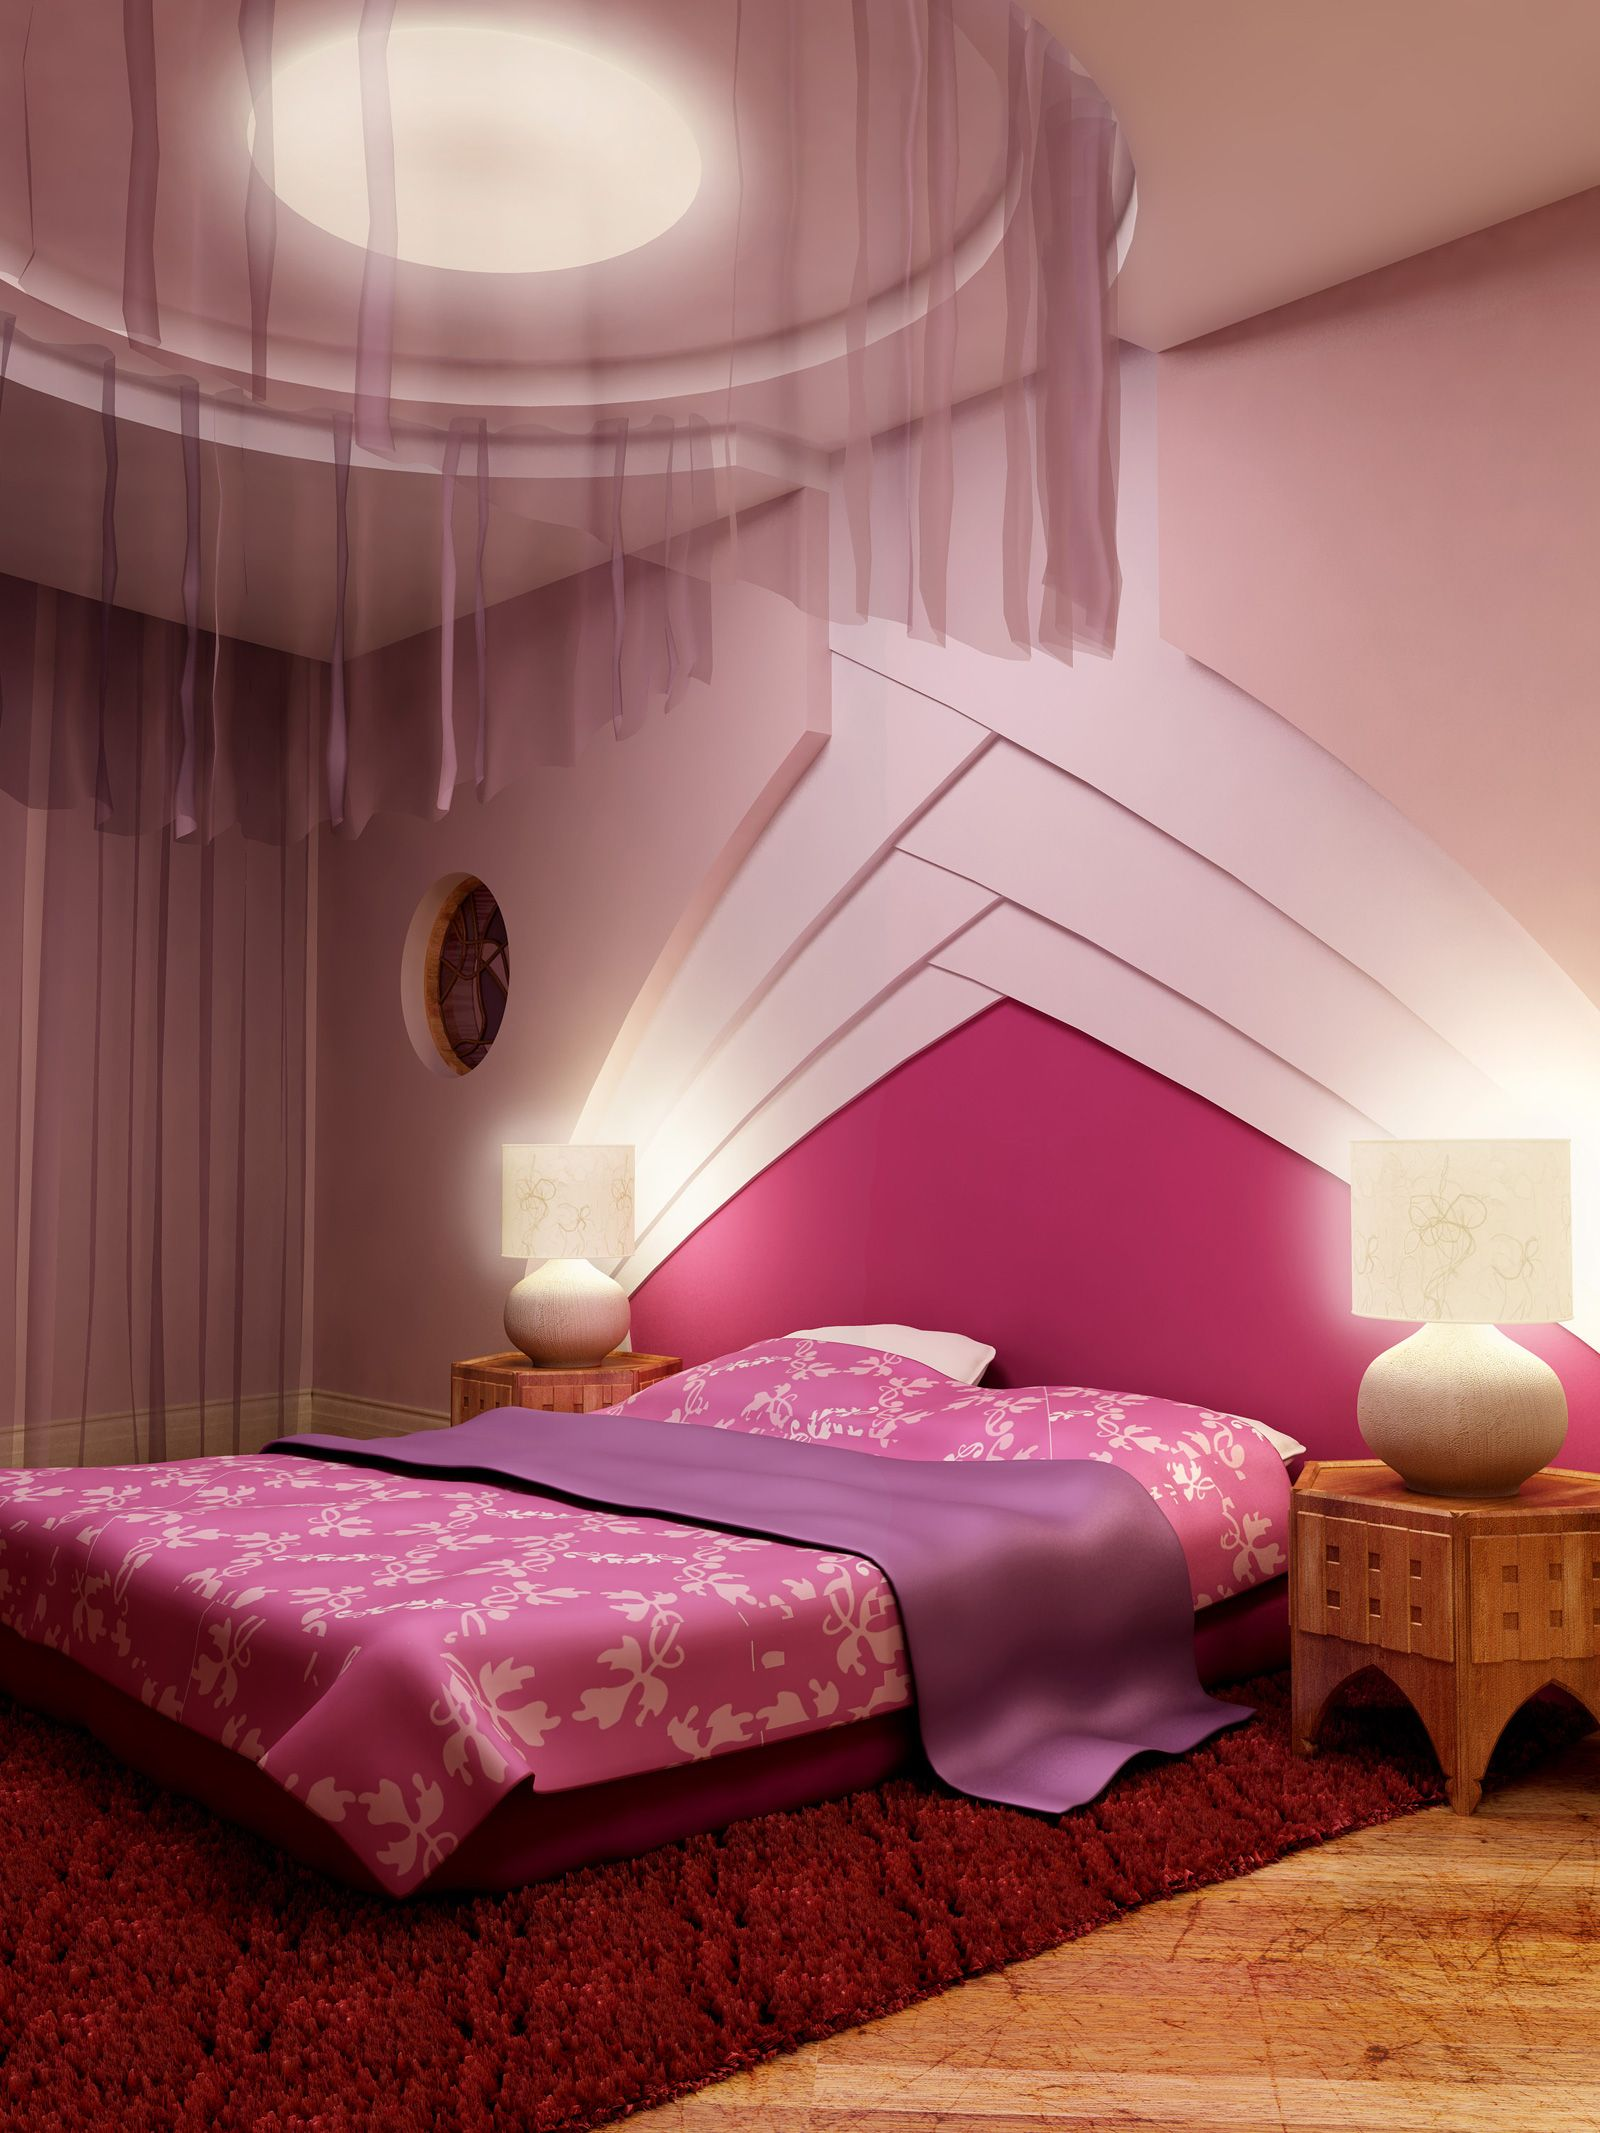 What Is The Best Color For Bedroom with romantic interior bedroom ...